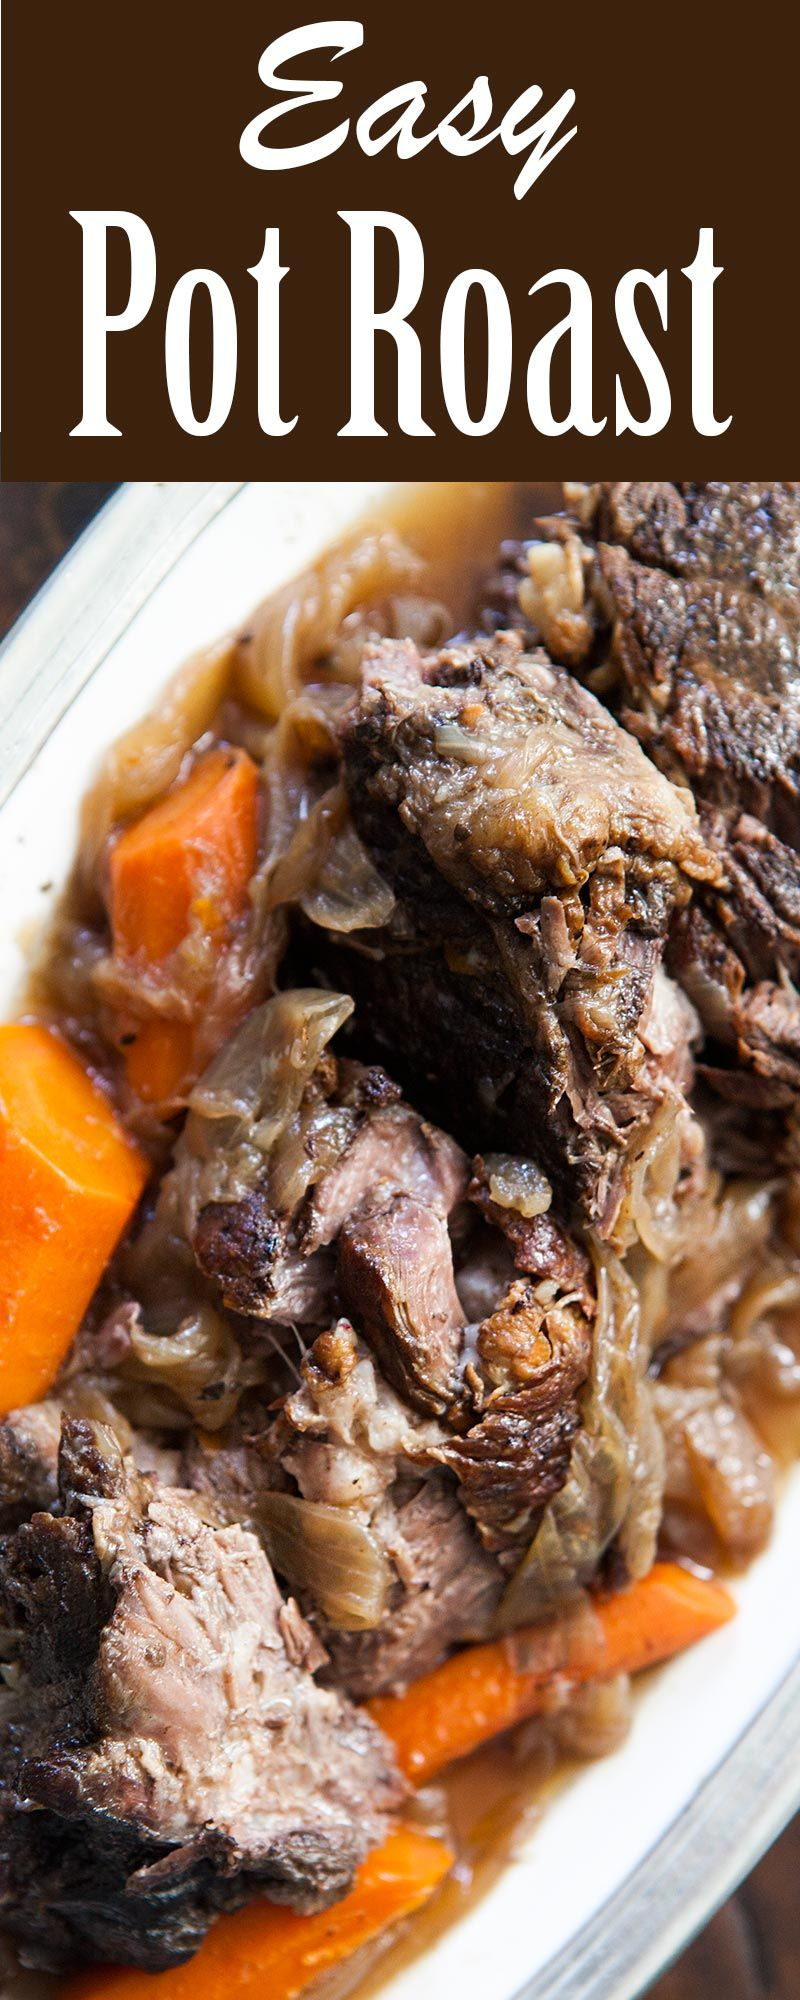 What is a recipe using chuck roast cooked in the oven?